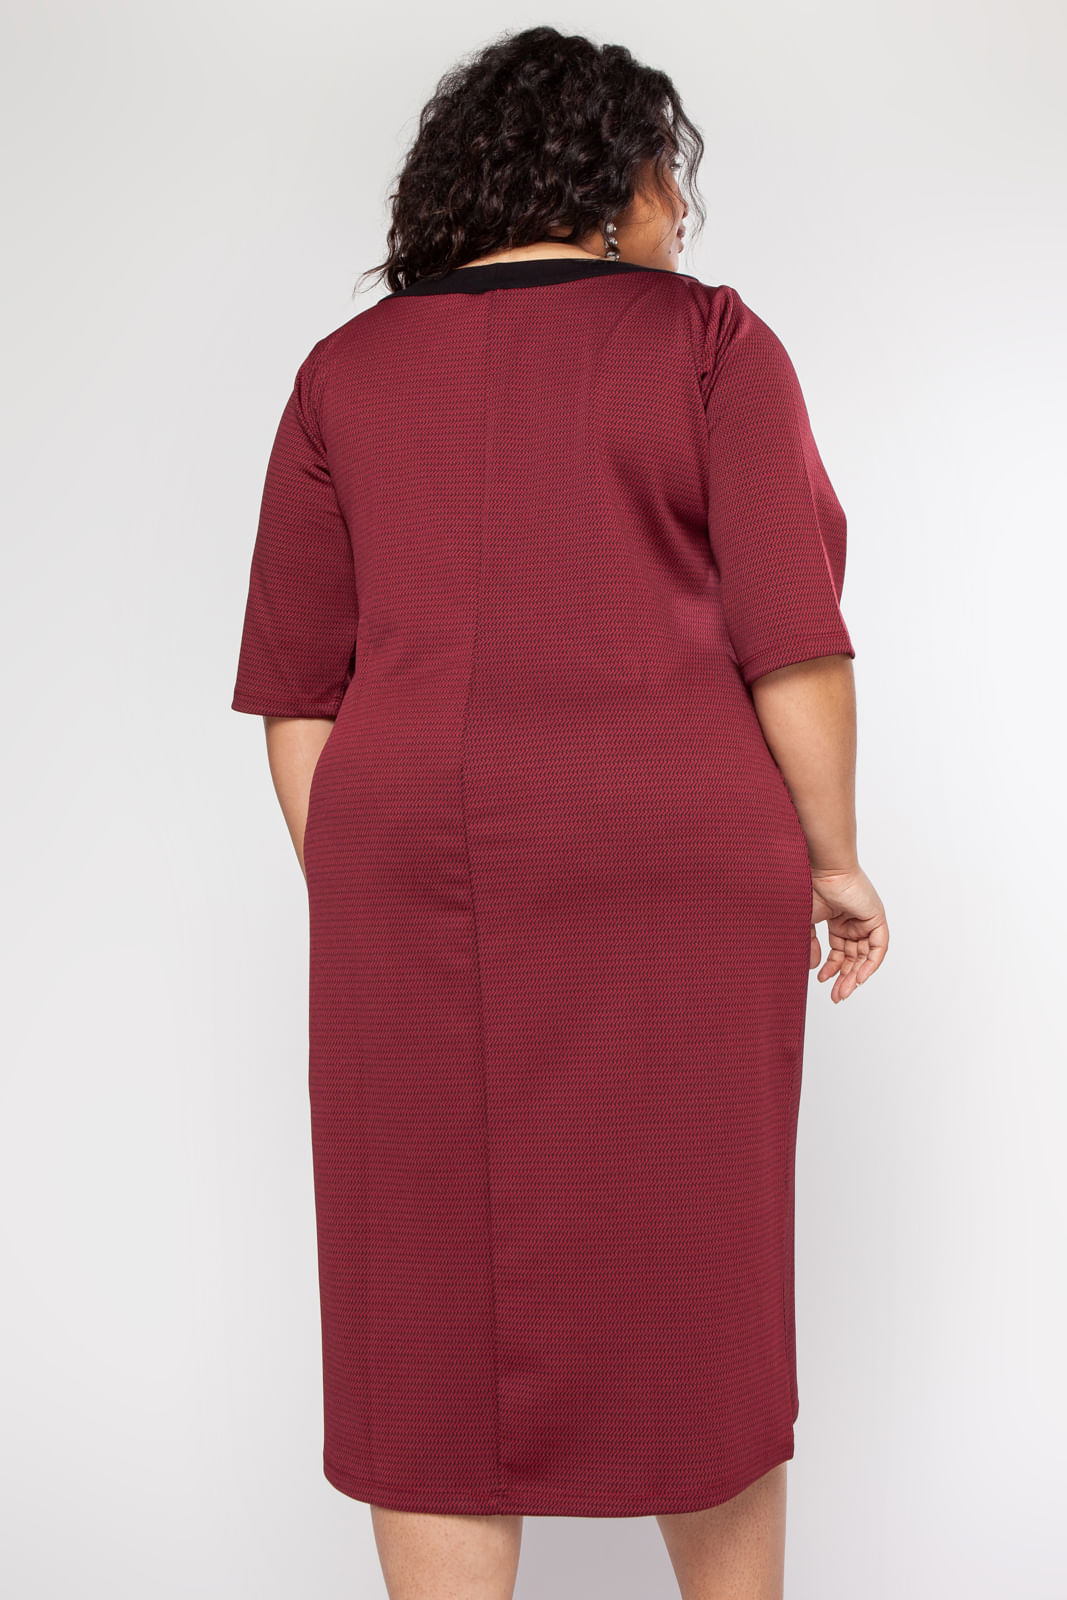 GRG57301_Vestido_Plus_Size_Midi_Bordo_4